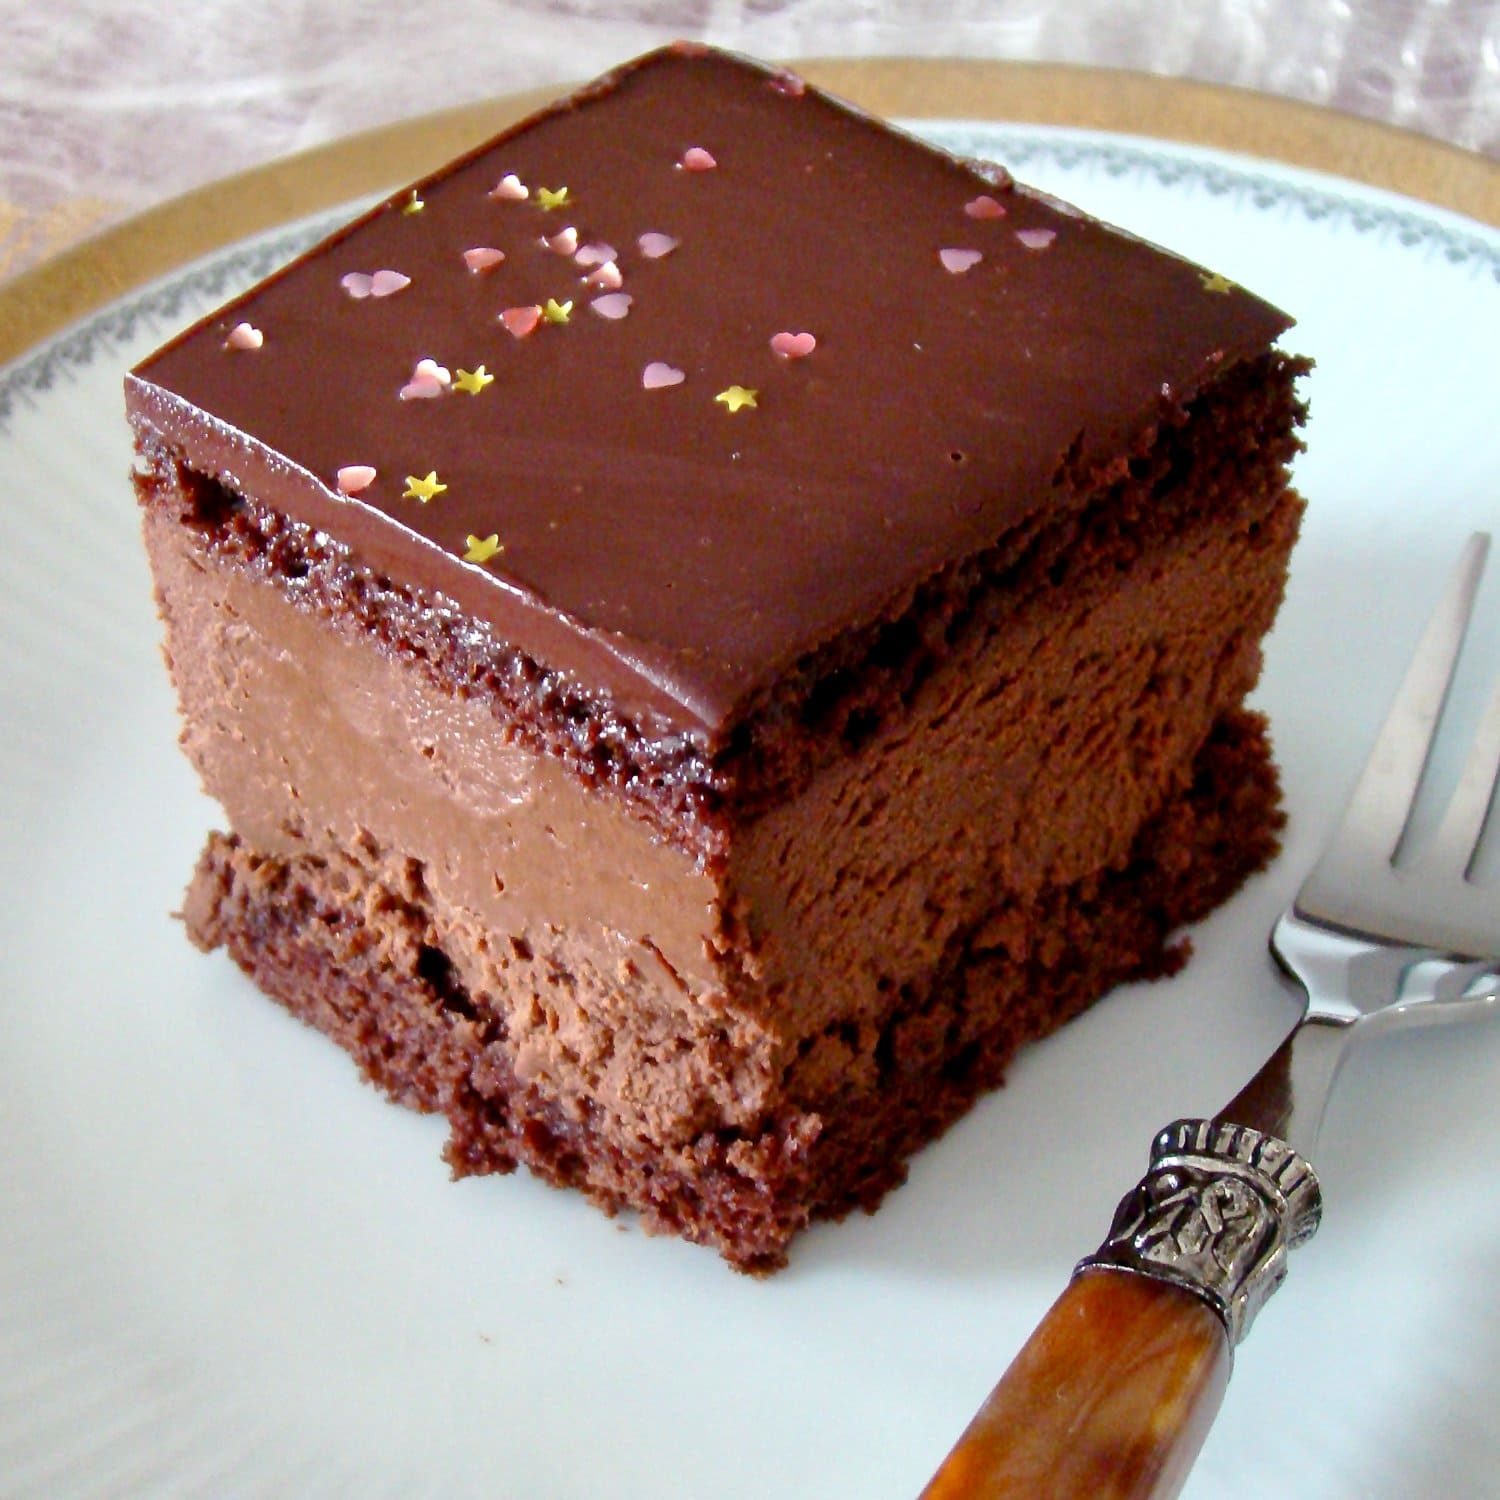 Hungarian Decadent Chocolate Cake- inspired from the original recipe of Rigo Jancsi Cake, an elegant dessert from 19th century in Austro Hungarian Empire.